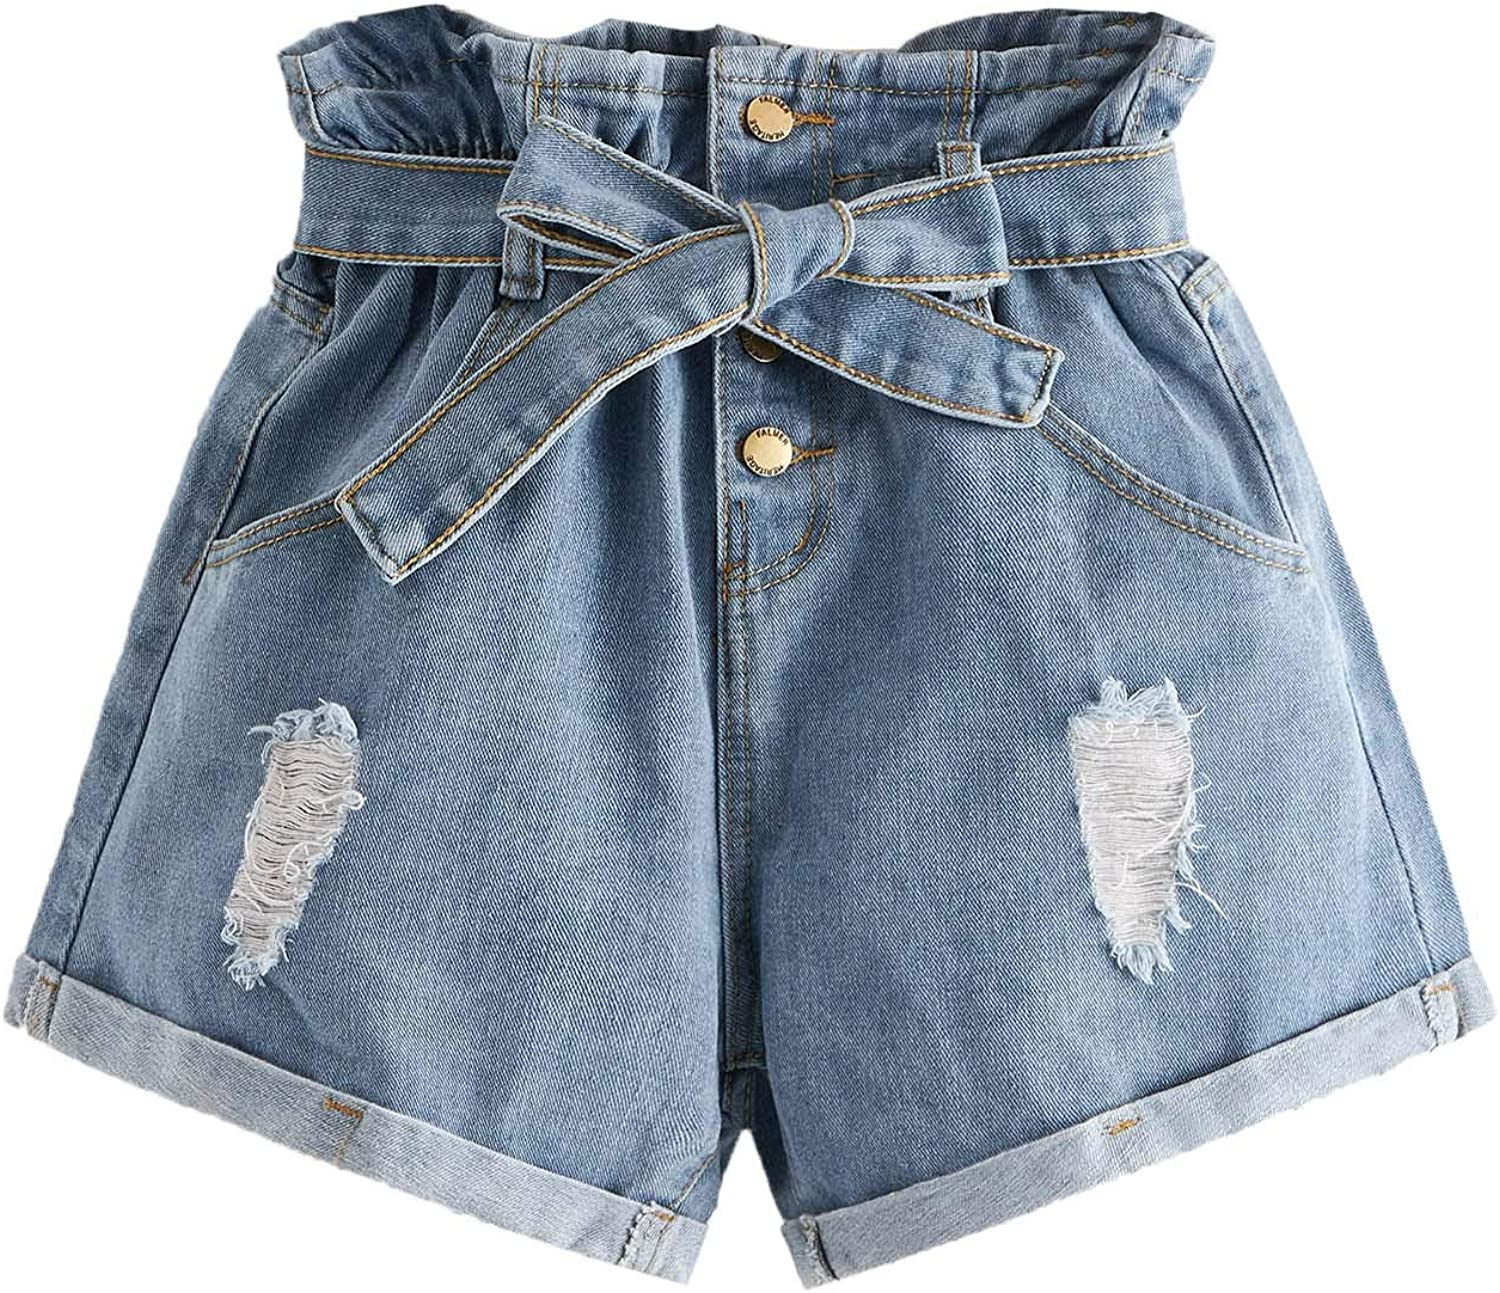 Milumia Women's High Waisted Belted Shorts Ripped Paperbag Denim Shorts